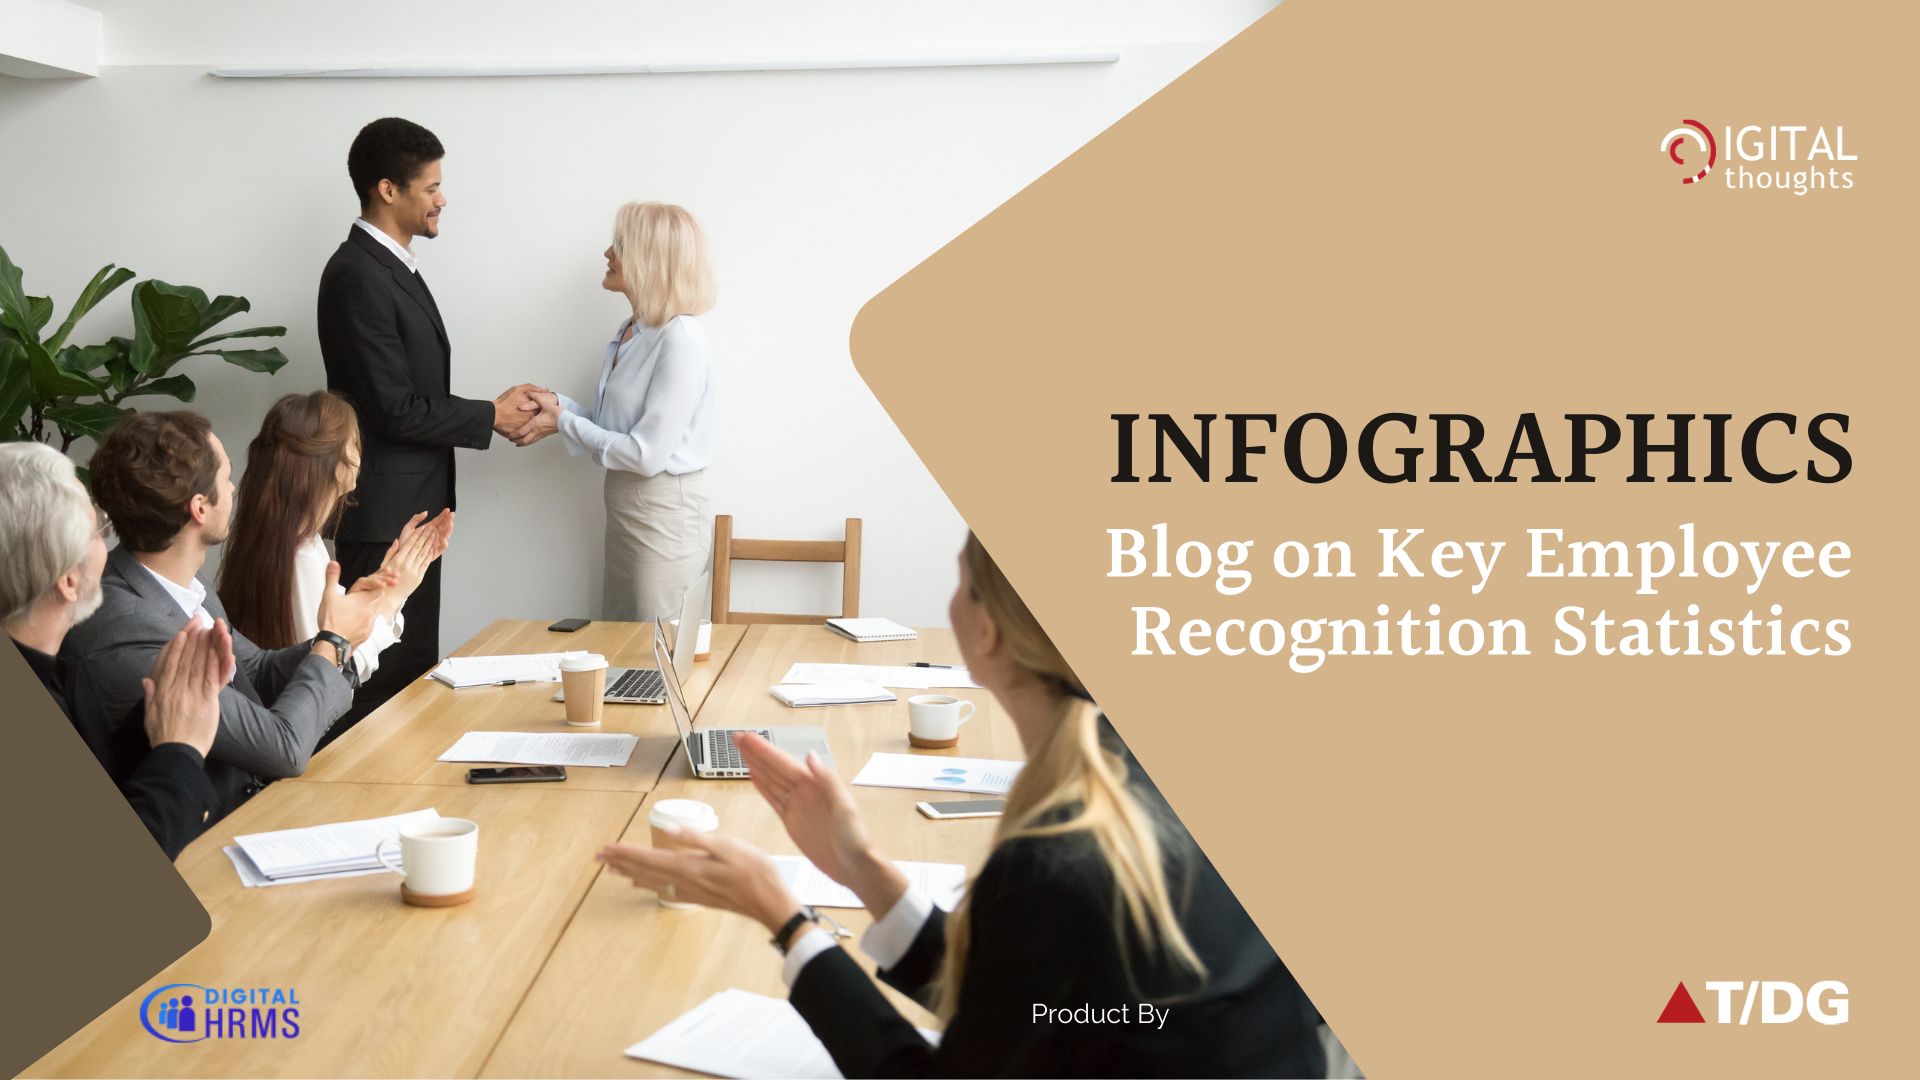 Infographics Blog on Employee Recognition Statistics the HR Should Know